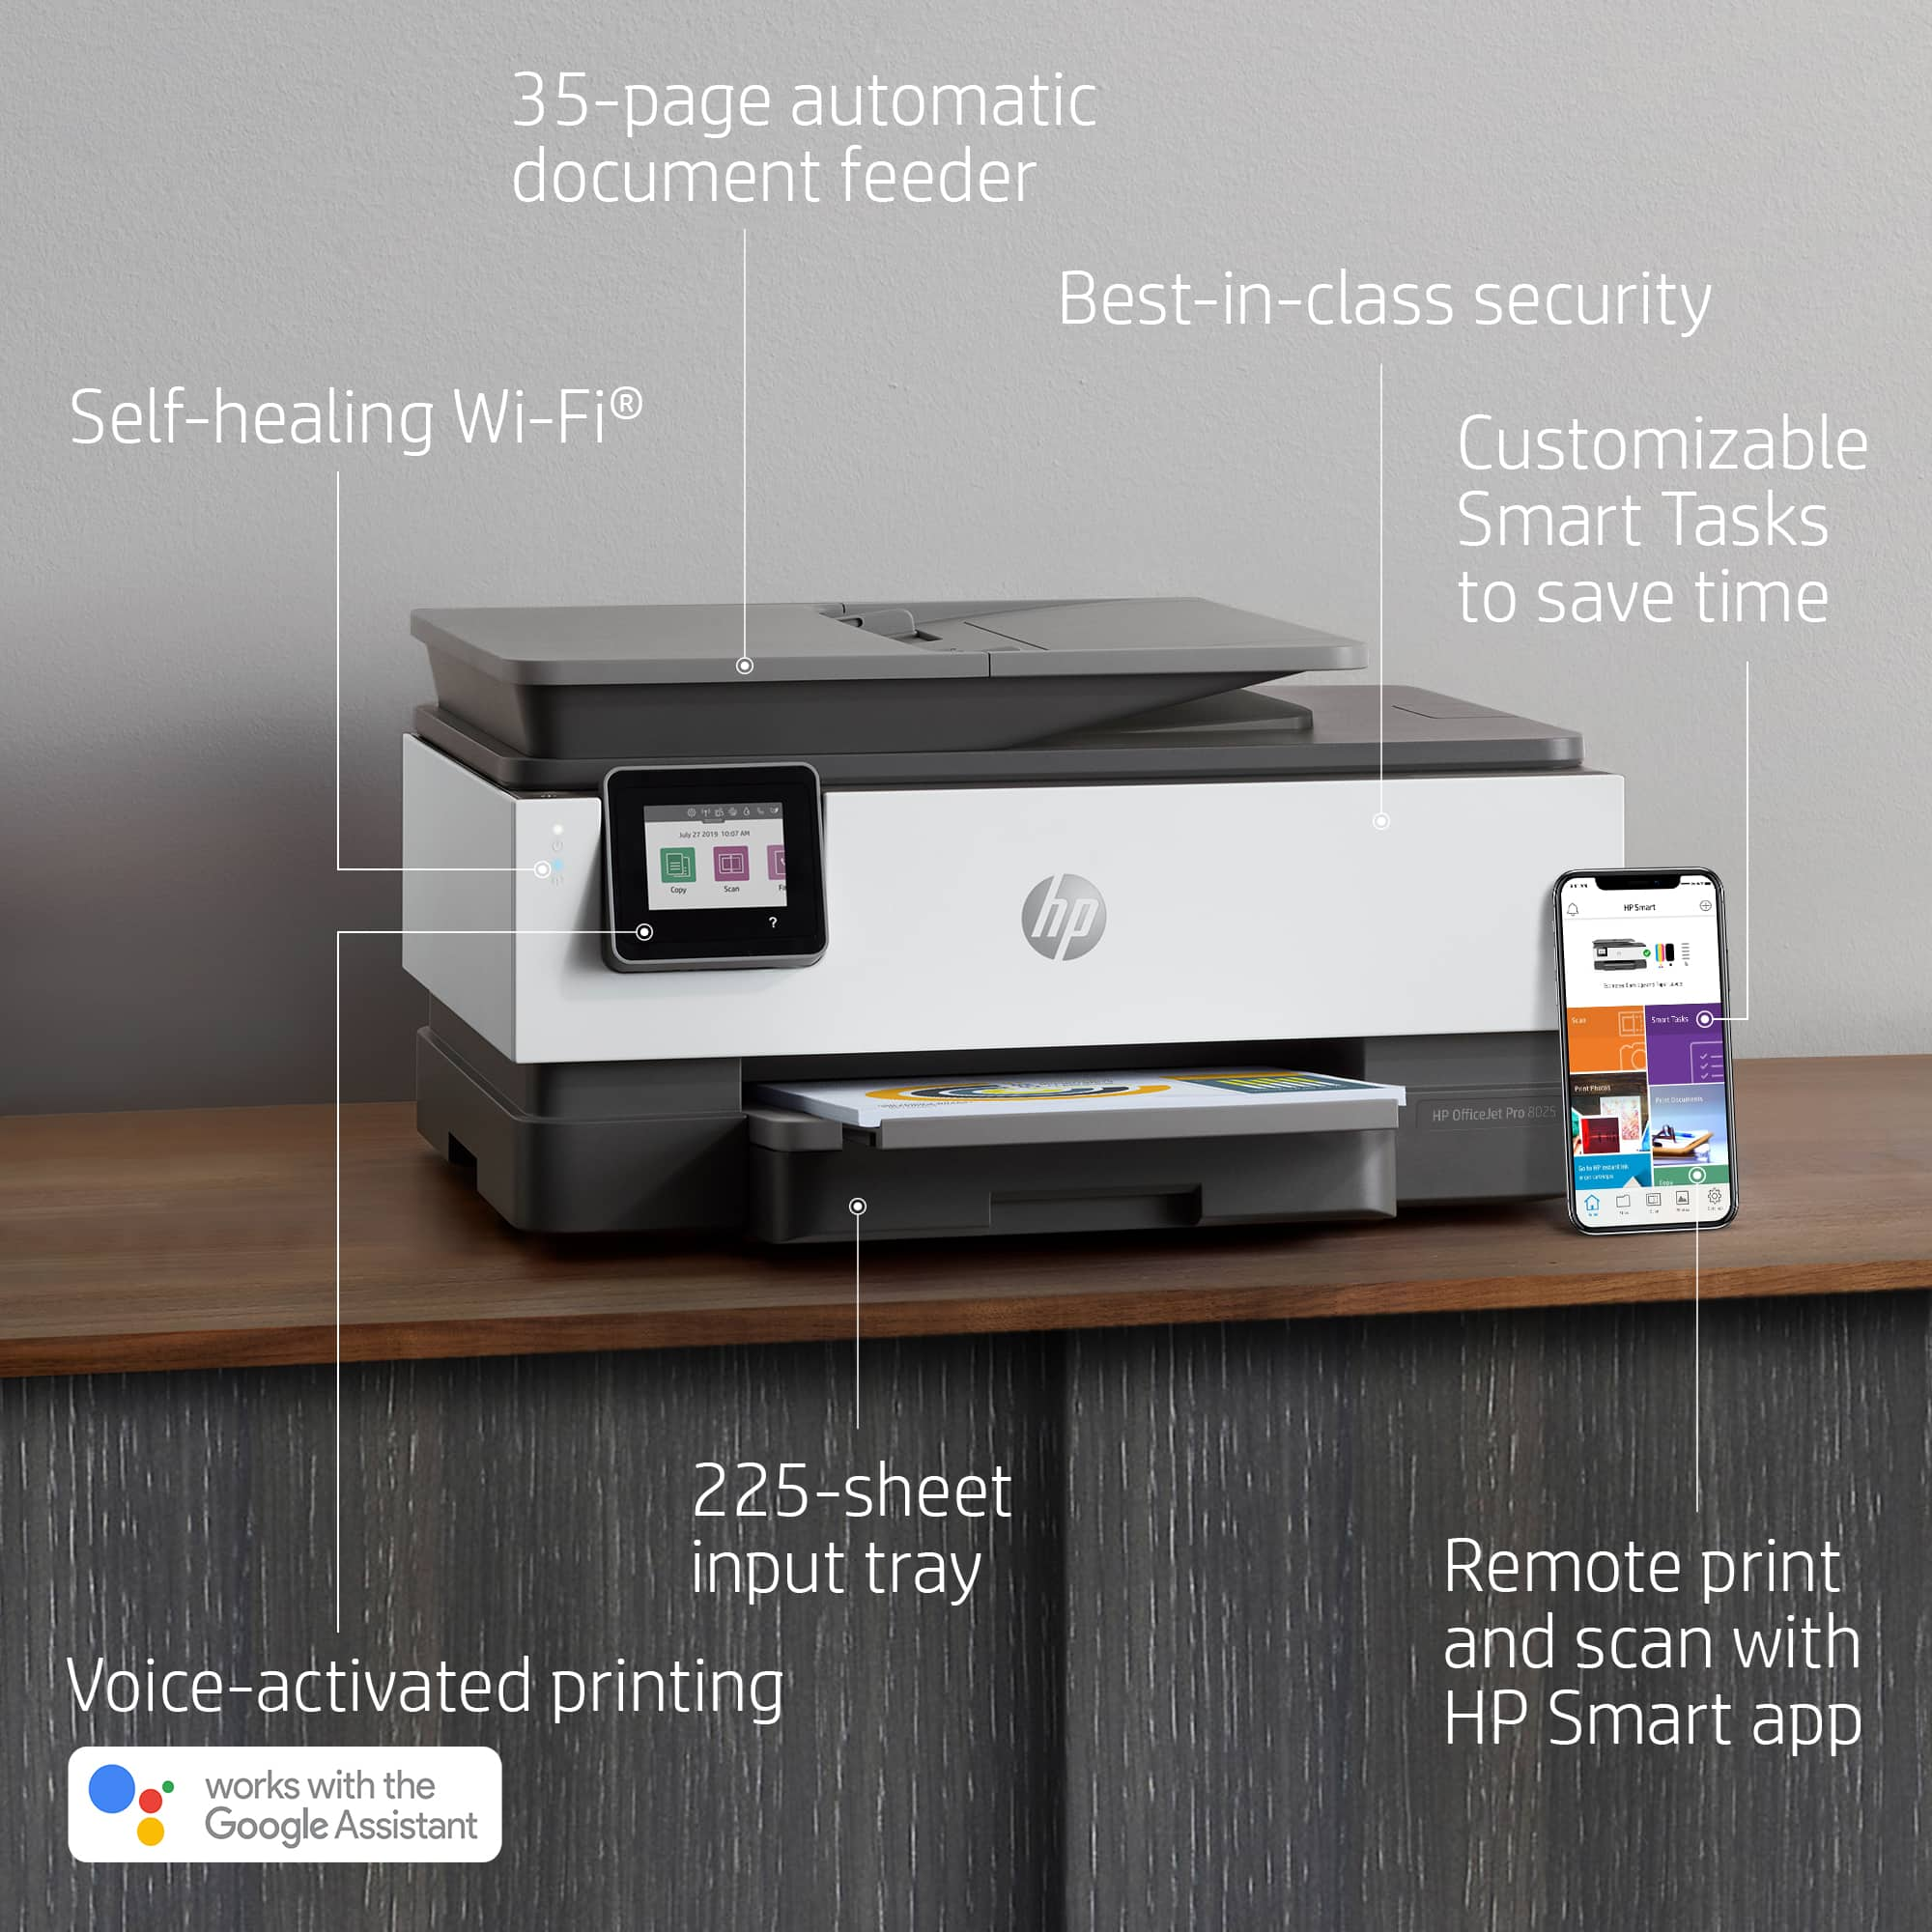 YMMV HP OfficeJet Pro 8025 Wireless Color Inkjet All-In-One Printer w/ Smart Tasks and HP Instant Ink, $74.99 Before Tax, Staples